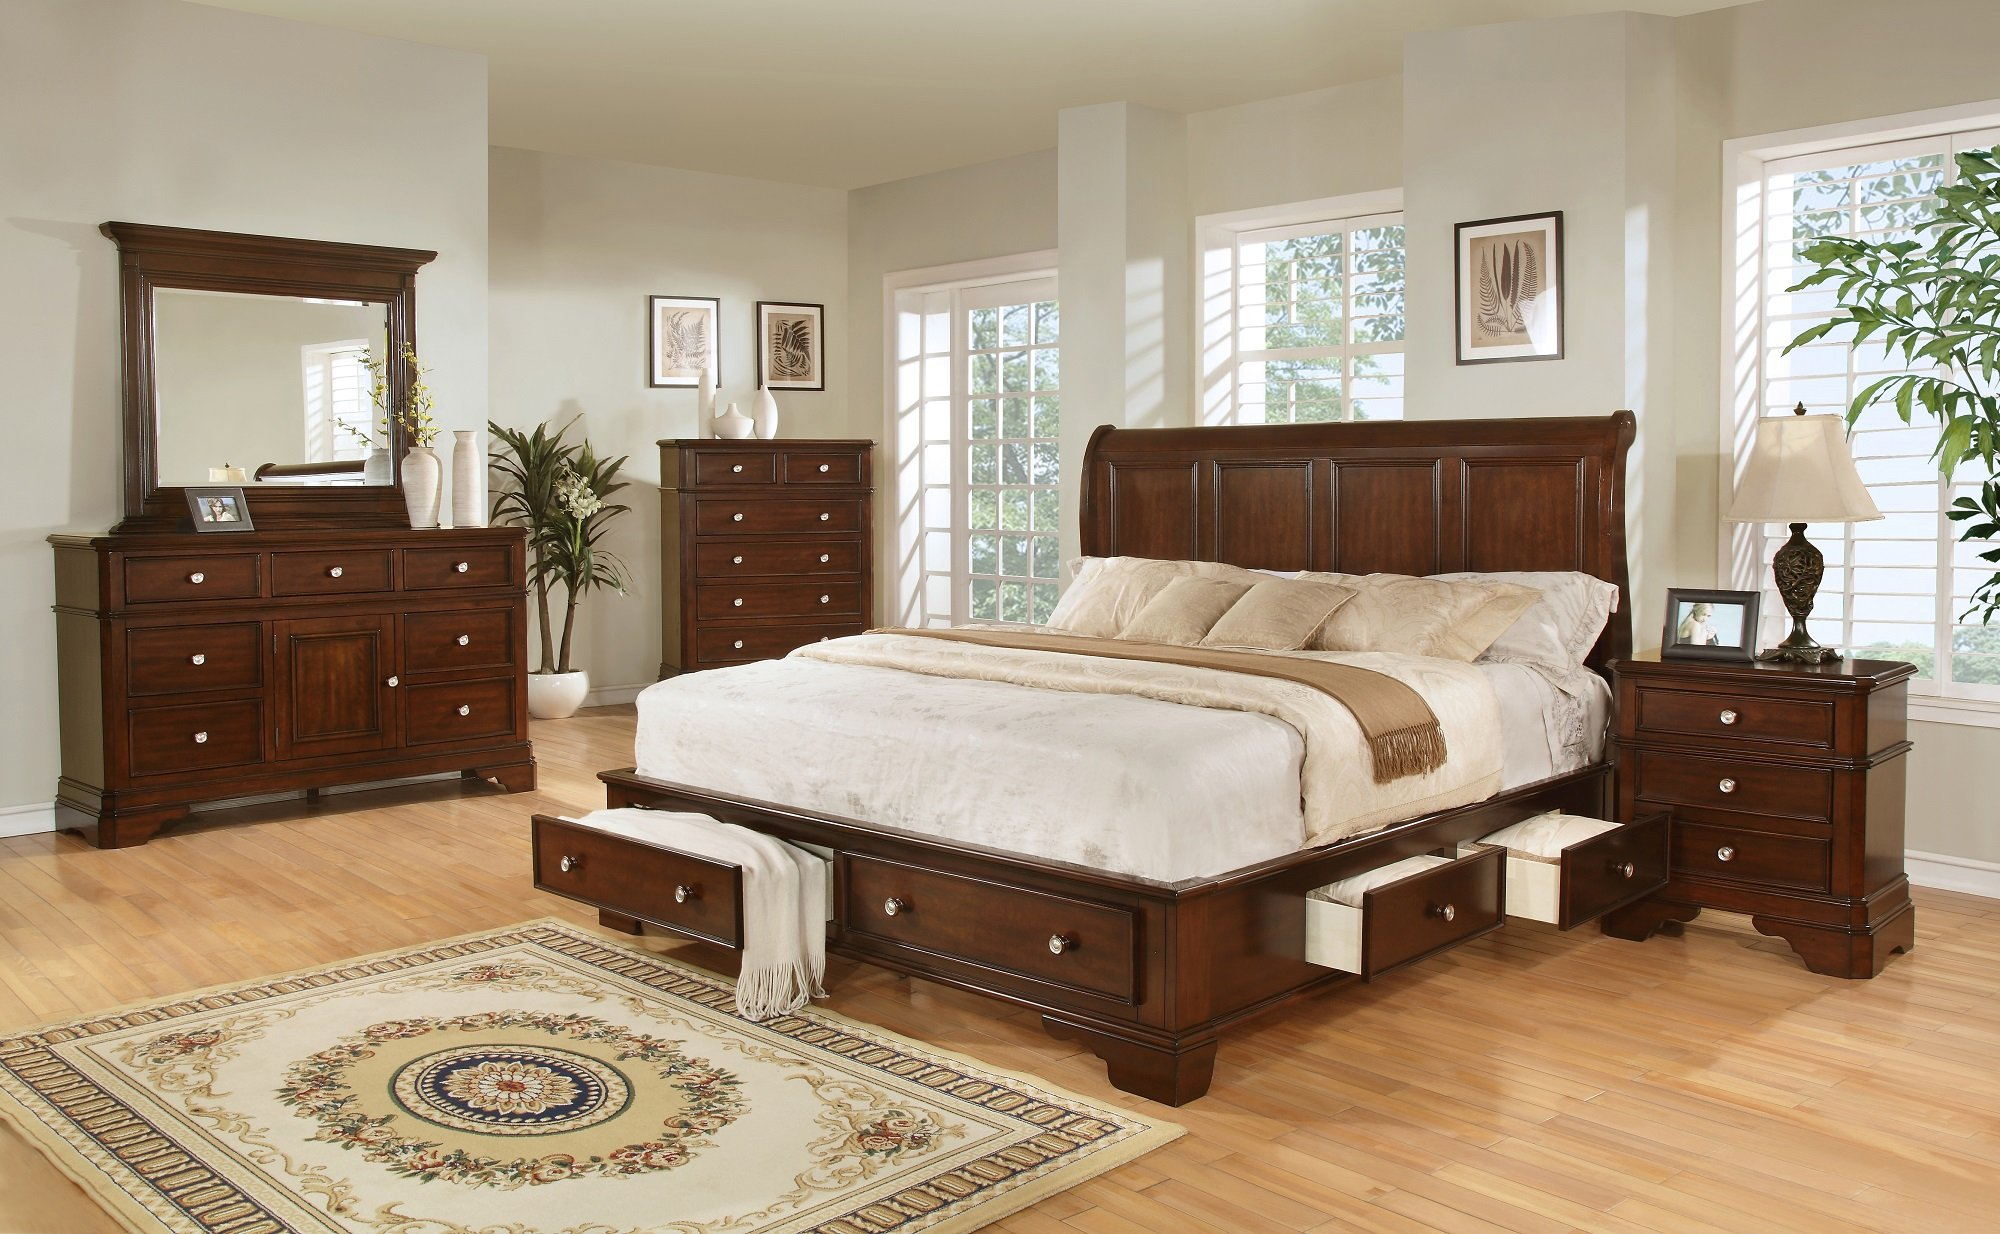 Bedroom furniture storage - B3185br Brown Cherry Storage Bedroom